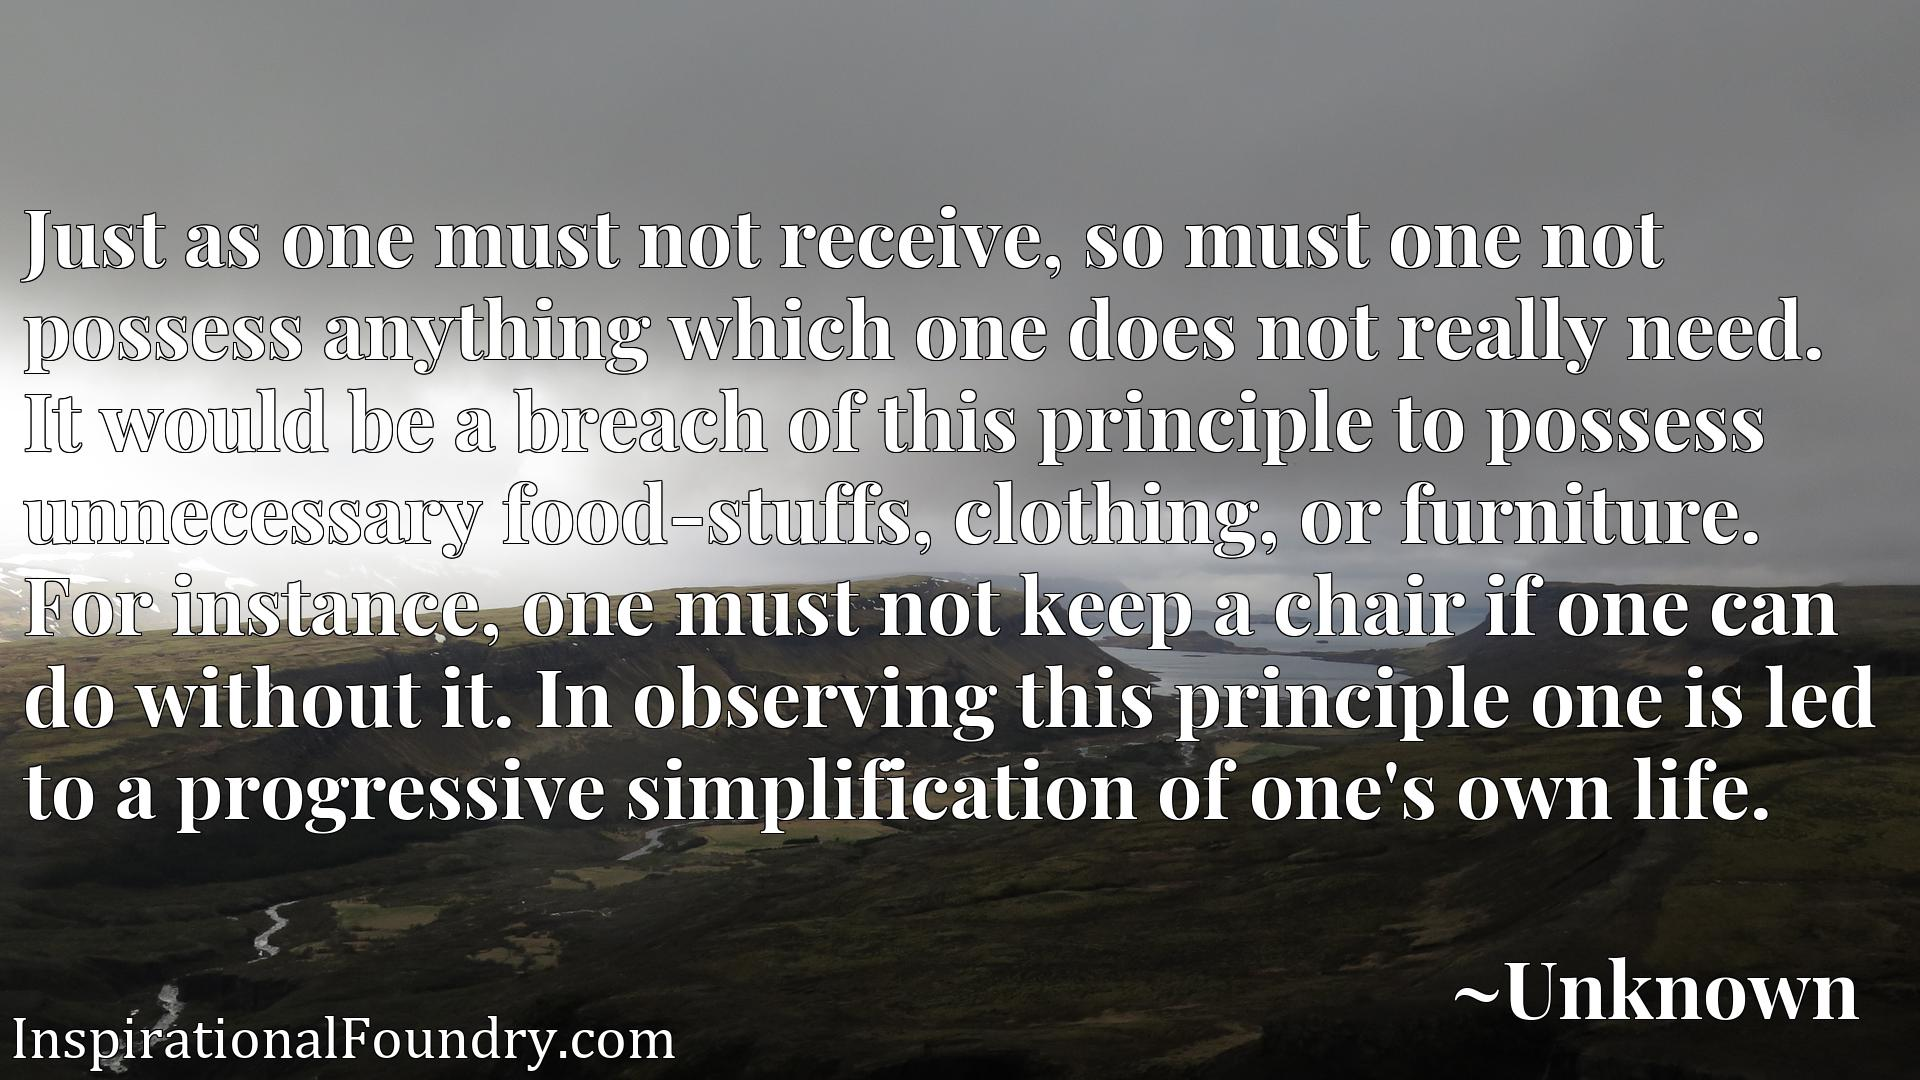 Just as one must not receive, so must one not possess anything which one does not really need. It would be a breach of this principle to possess unnecessary food-stuffs, clothing, or furniture. For instance, one must not keep a chair if one can do without it. In observing this principle one is led to a progressive simplification of one's own life.